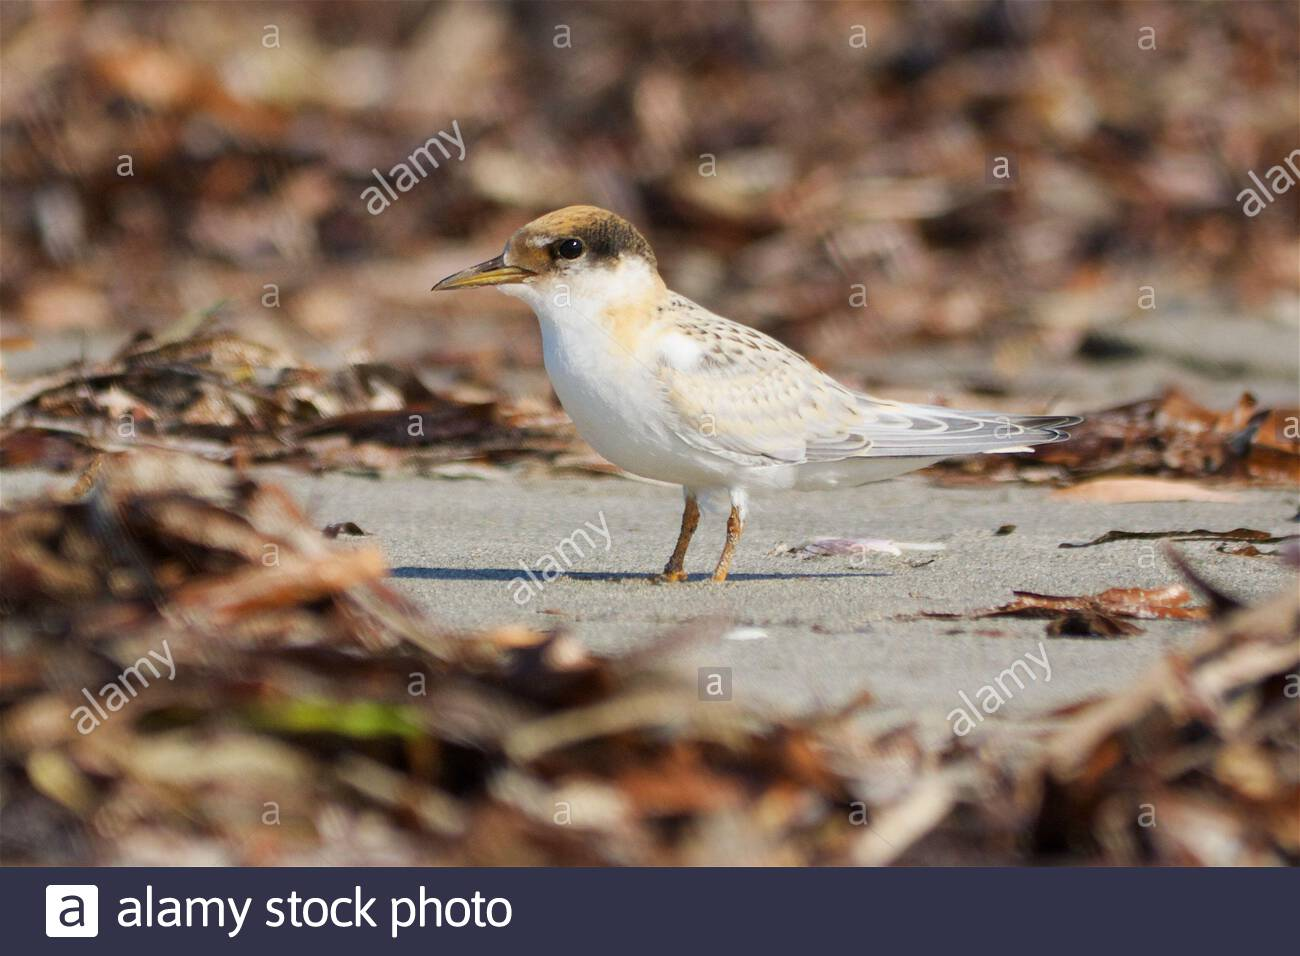 a-fairy-tern-chick-sternula-nereis-amongst-seaweed-on-the-beach-waiting-for-a-parent-to-return-with-breakfast-woodman-point-western-australia-2C4J204.jpg